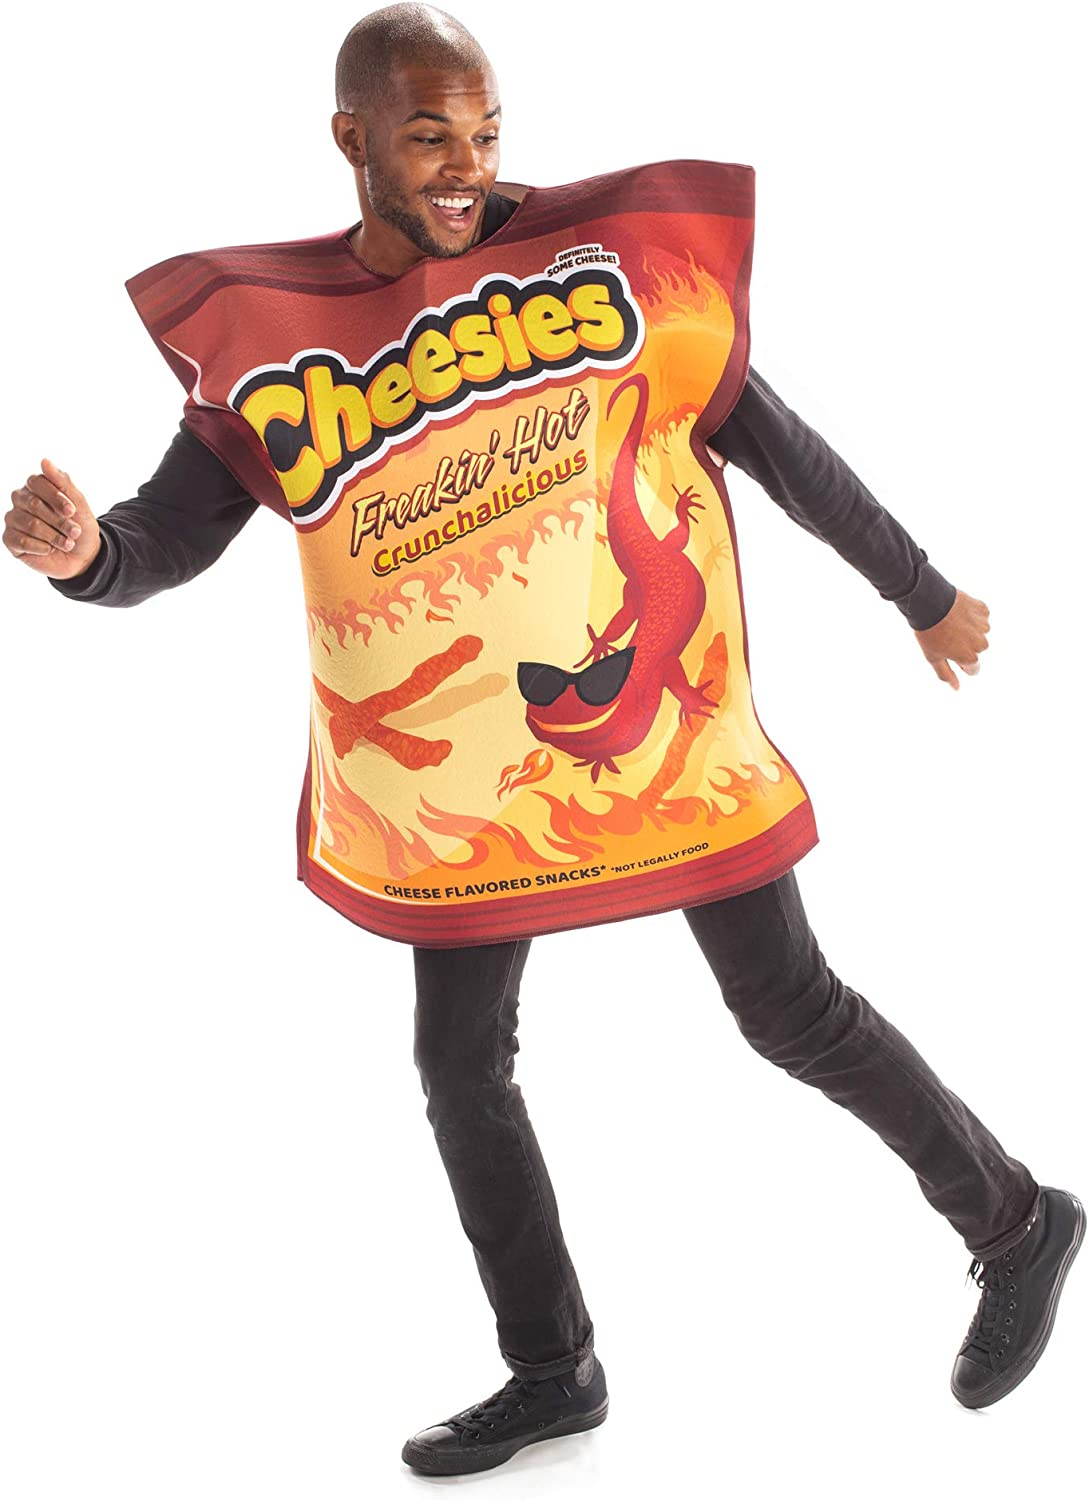 Freakin' Hot Cheesies Halloween Costume - Funny Snack Food Unisex Adult Outfit